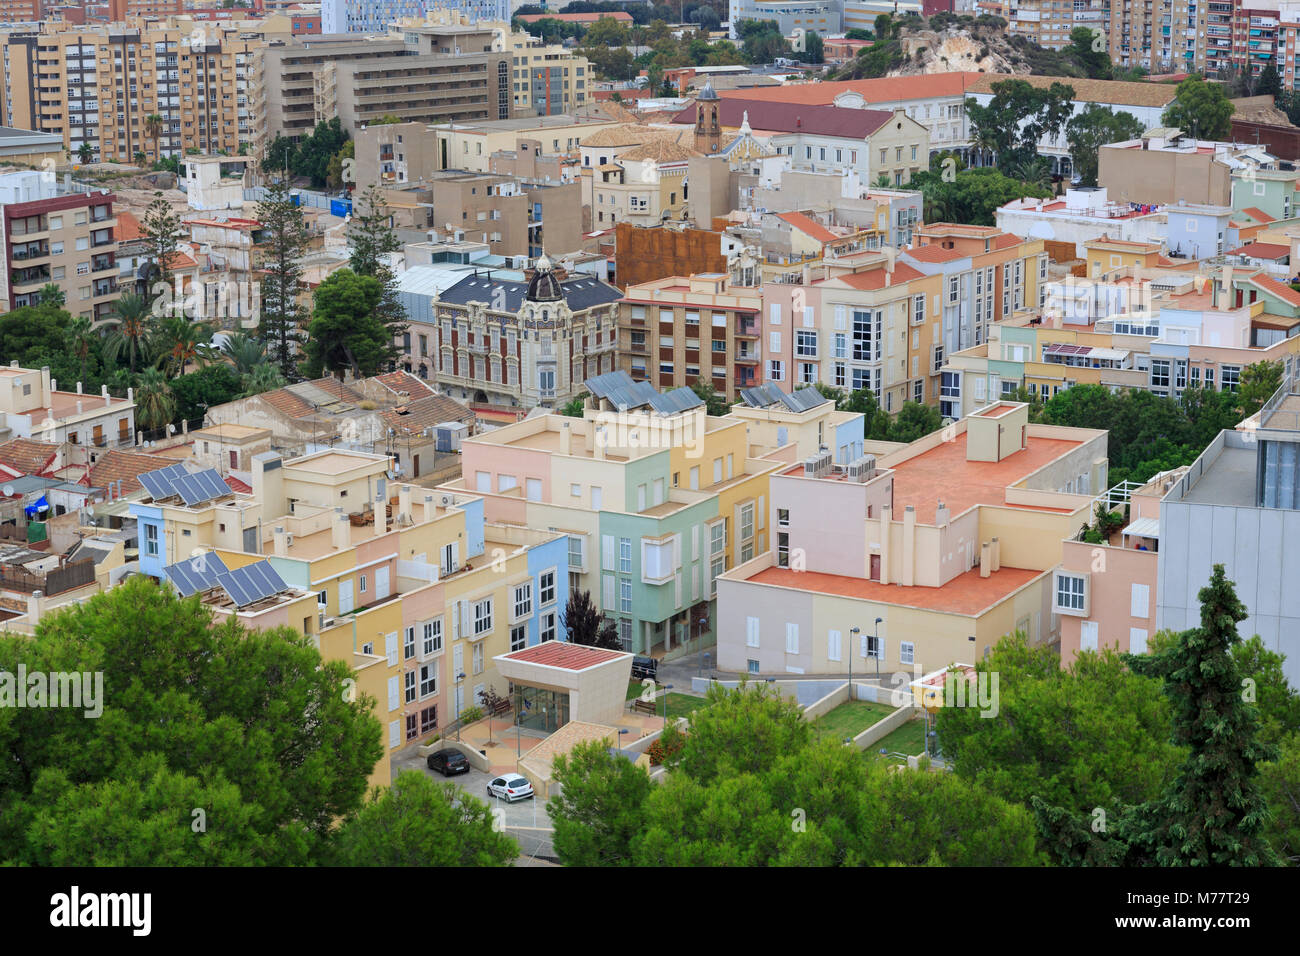 Cartagena, Murcia, Spain, Europe - Stock Image